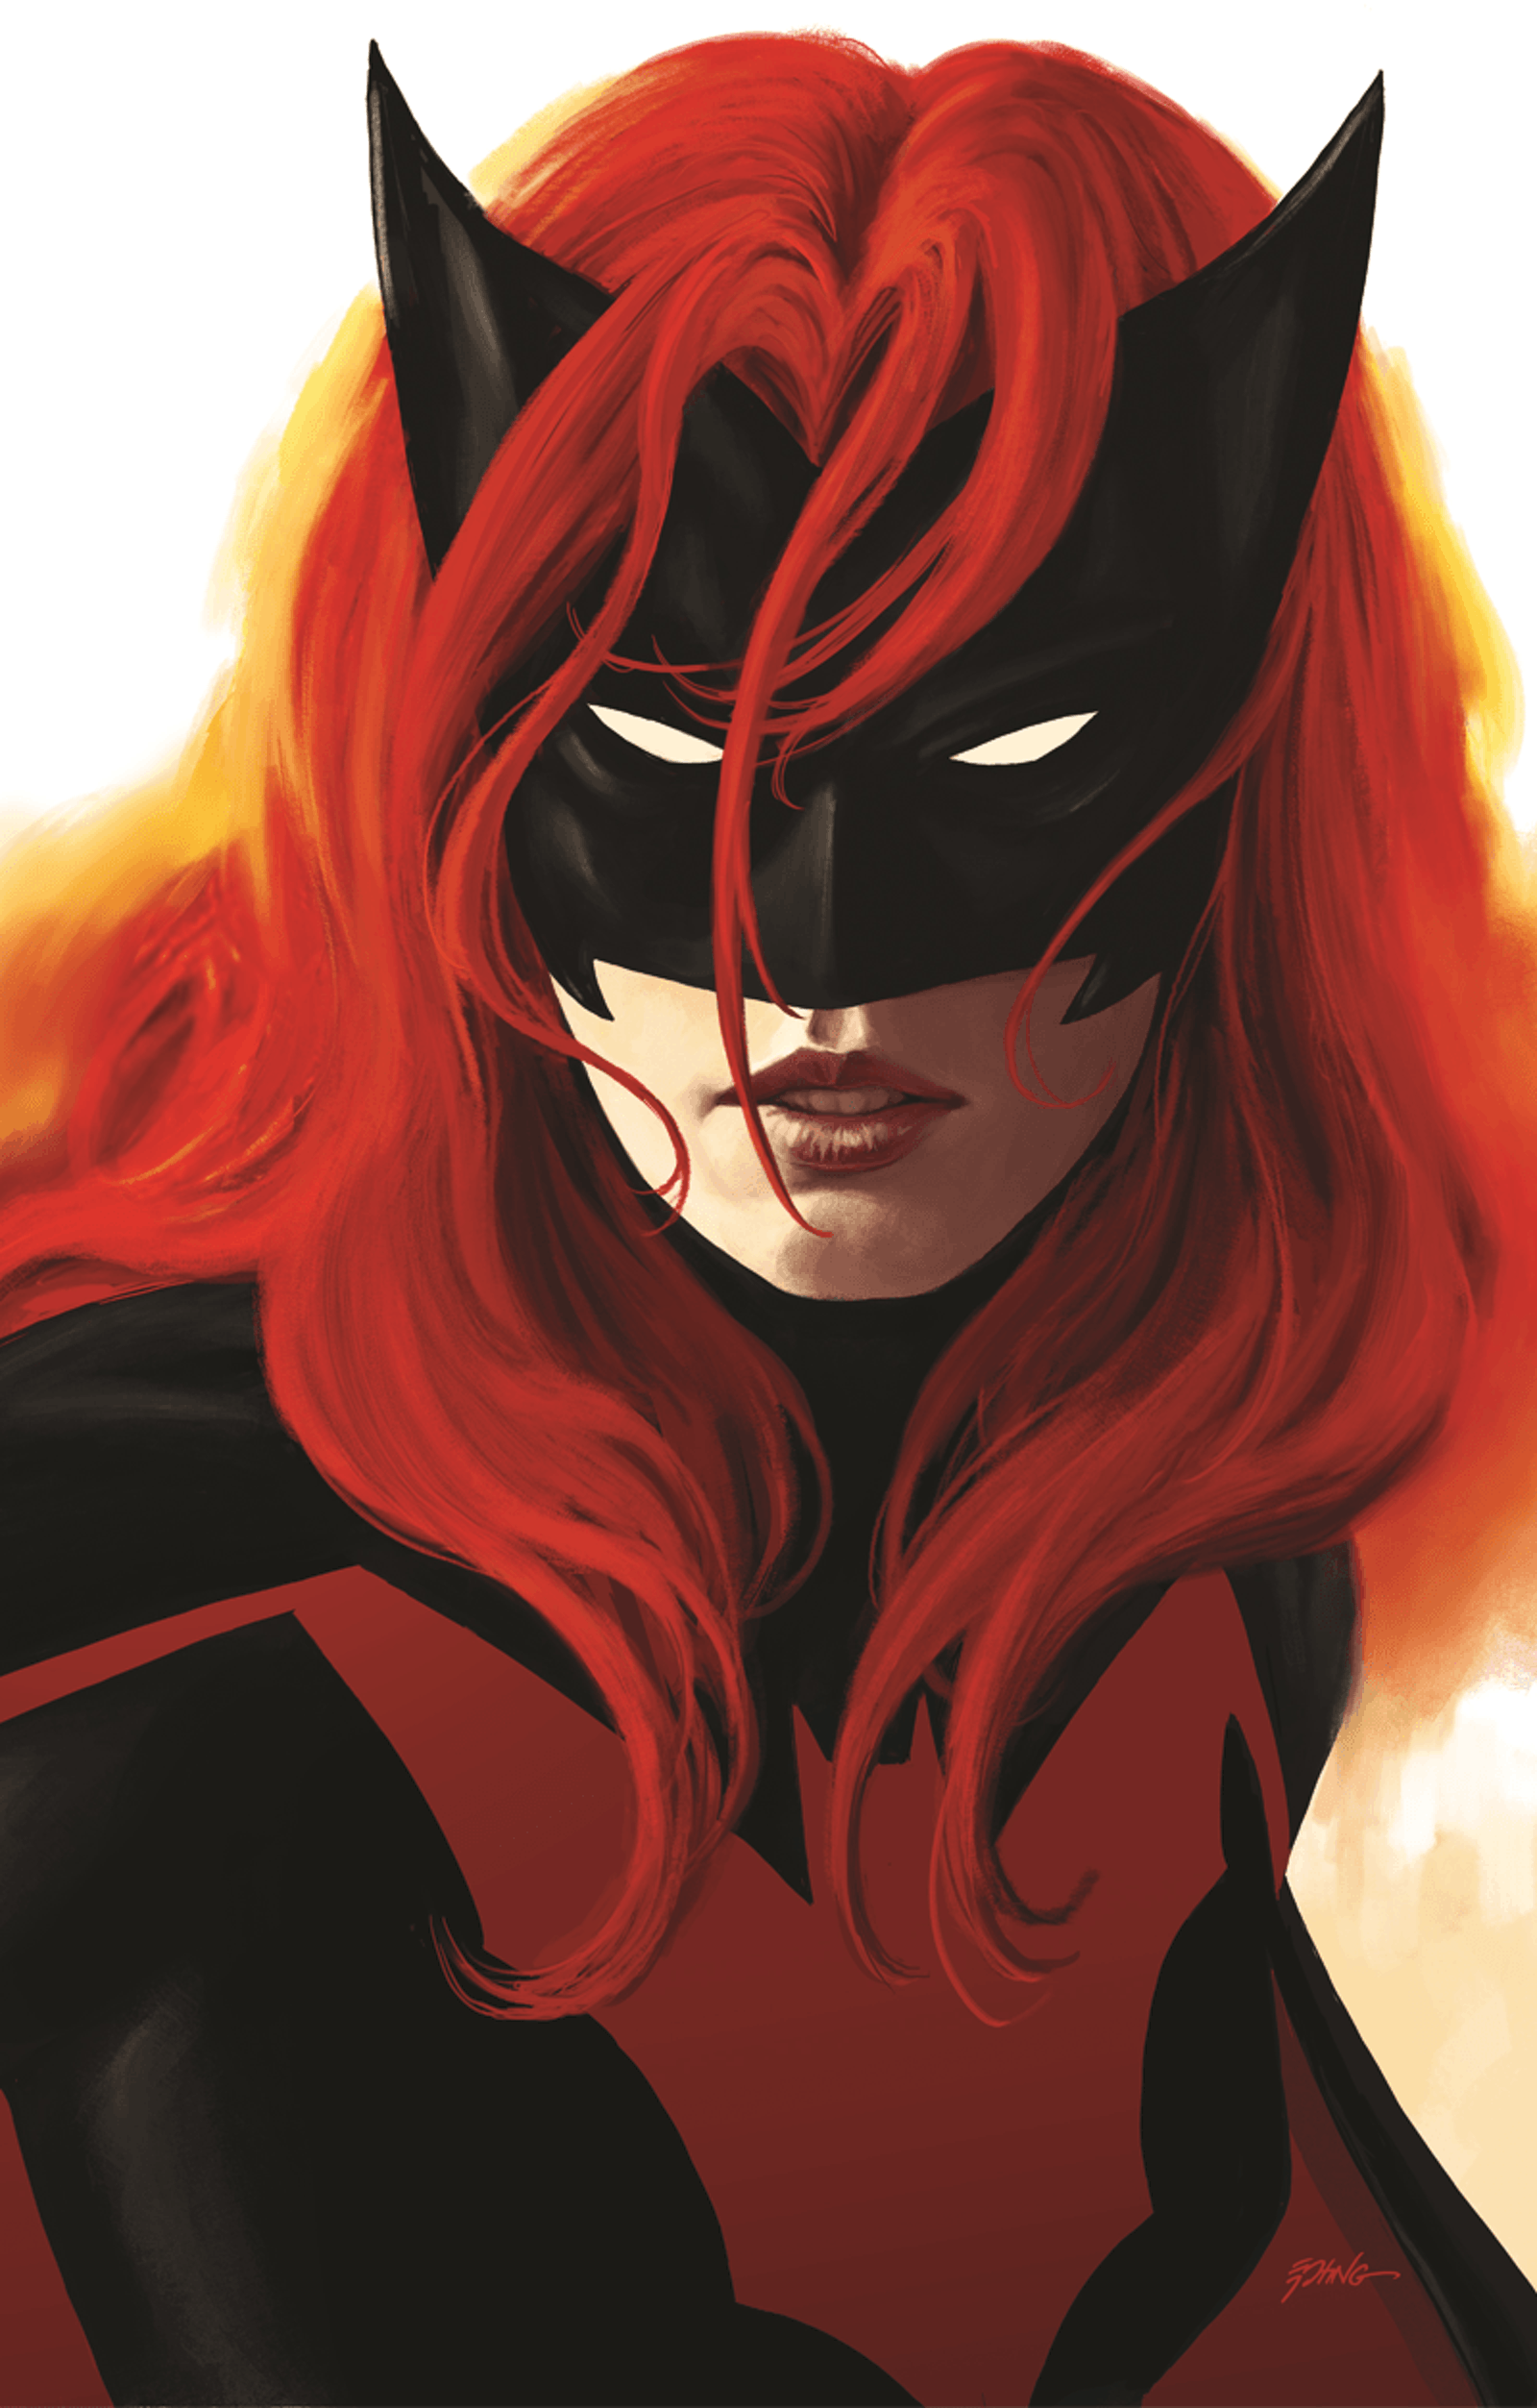 DC's 'Batwoman' Solo Series Will Honor Her Queer Sexuality